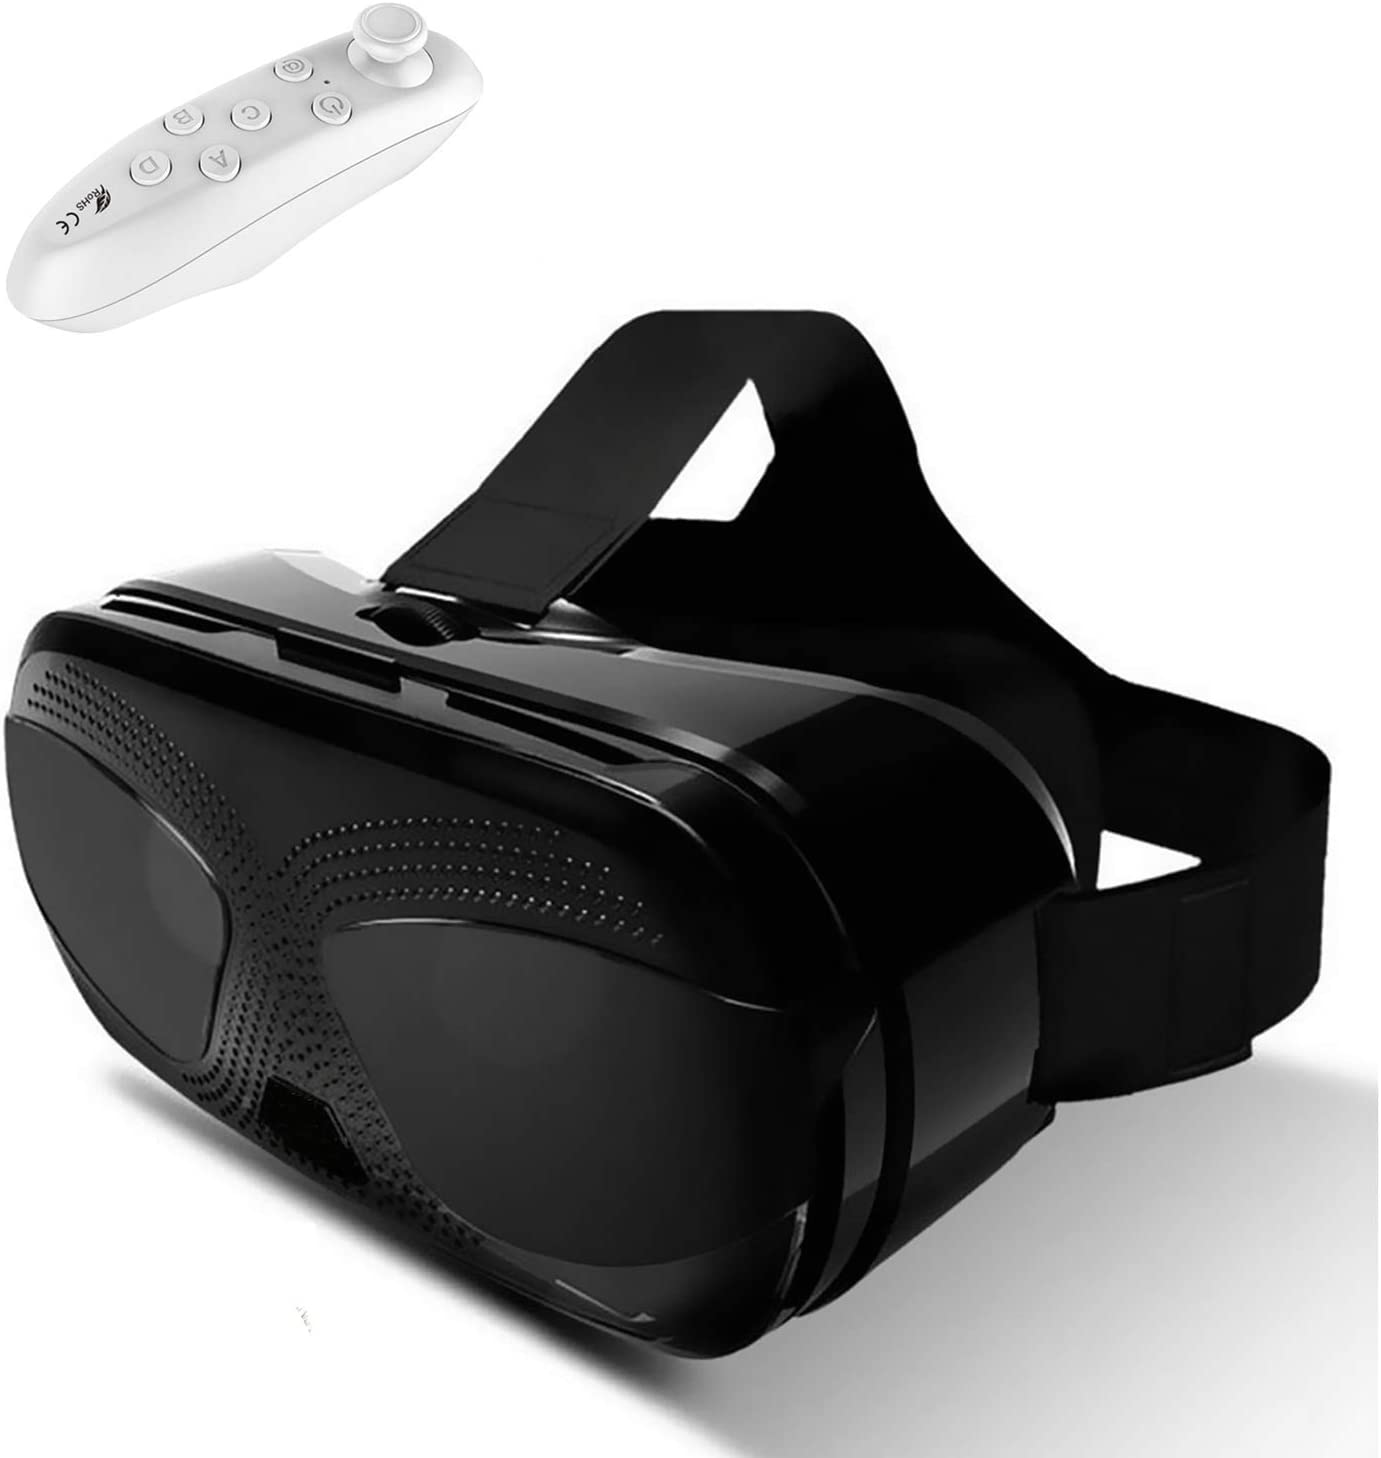 Virtual Reality Headset, 3D VR Goggles w/Remote Controller[Gift] 3D Movies Video Games Viewer for iPhone 11 Pro XR XS X 8 7 6S 6 Plus Samsung S10 S9 S8 S7 S6 Edge + BLU A4 R2+ etc, Black VR Glasses